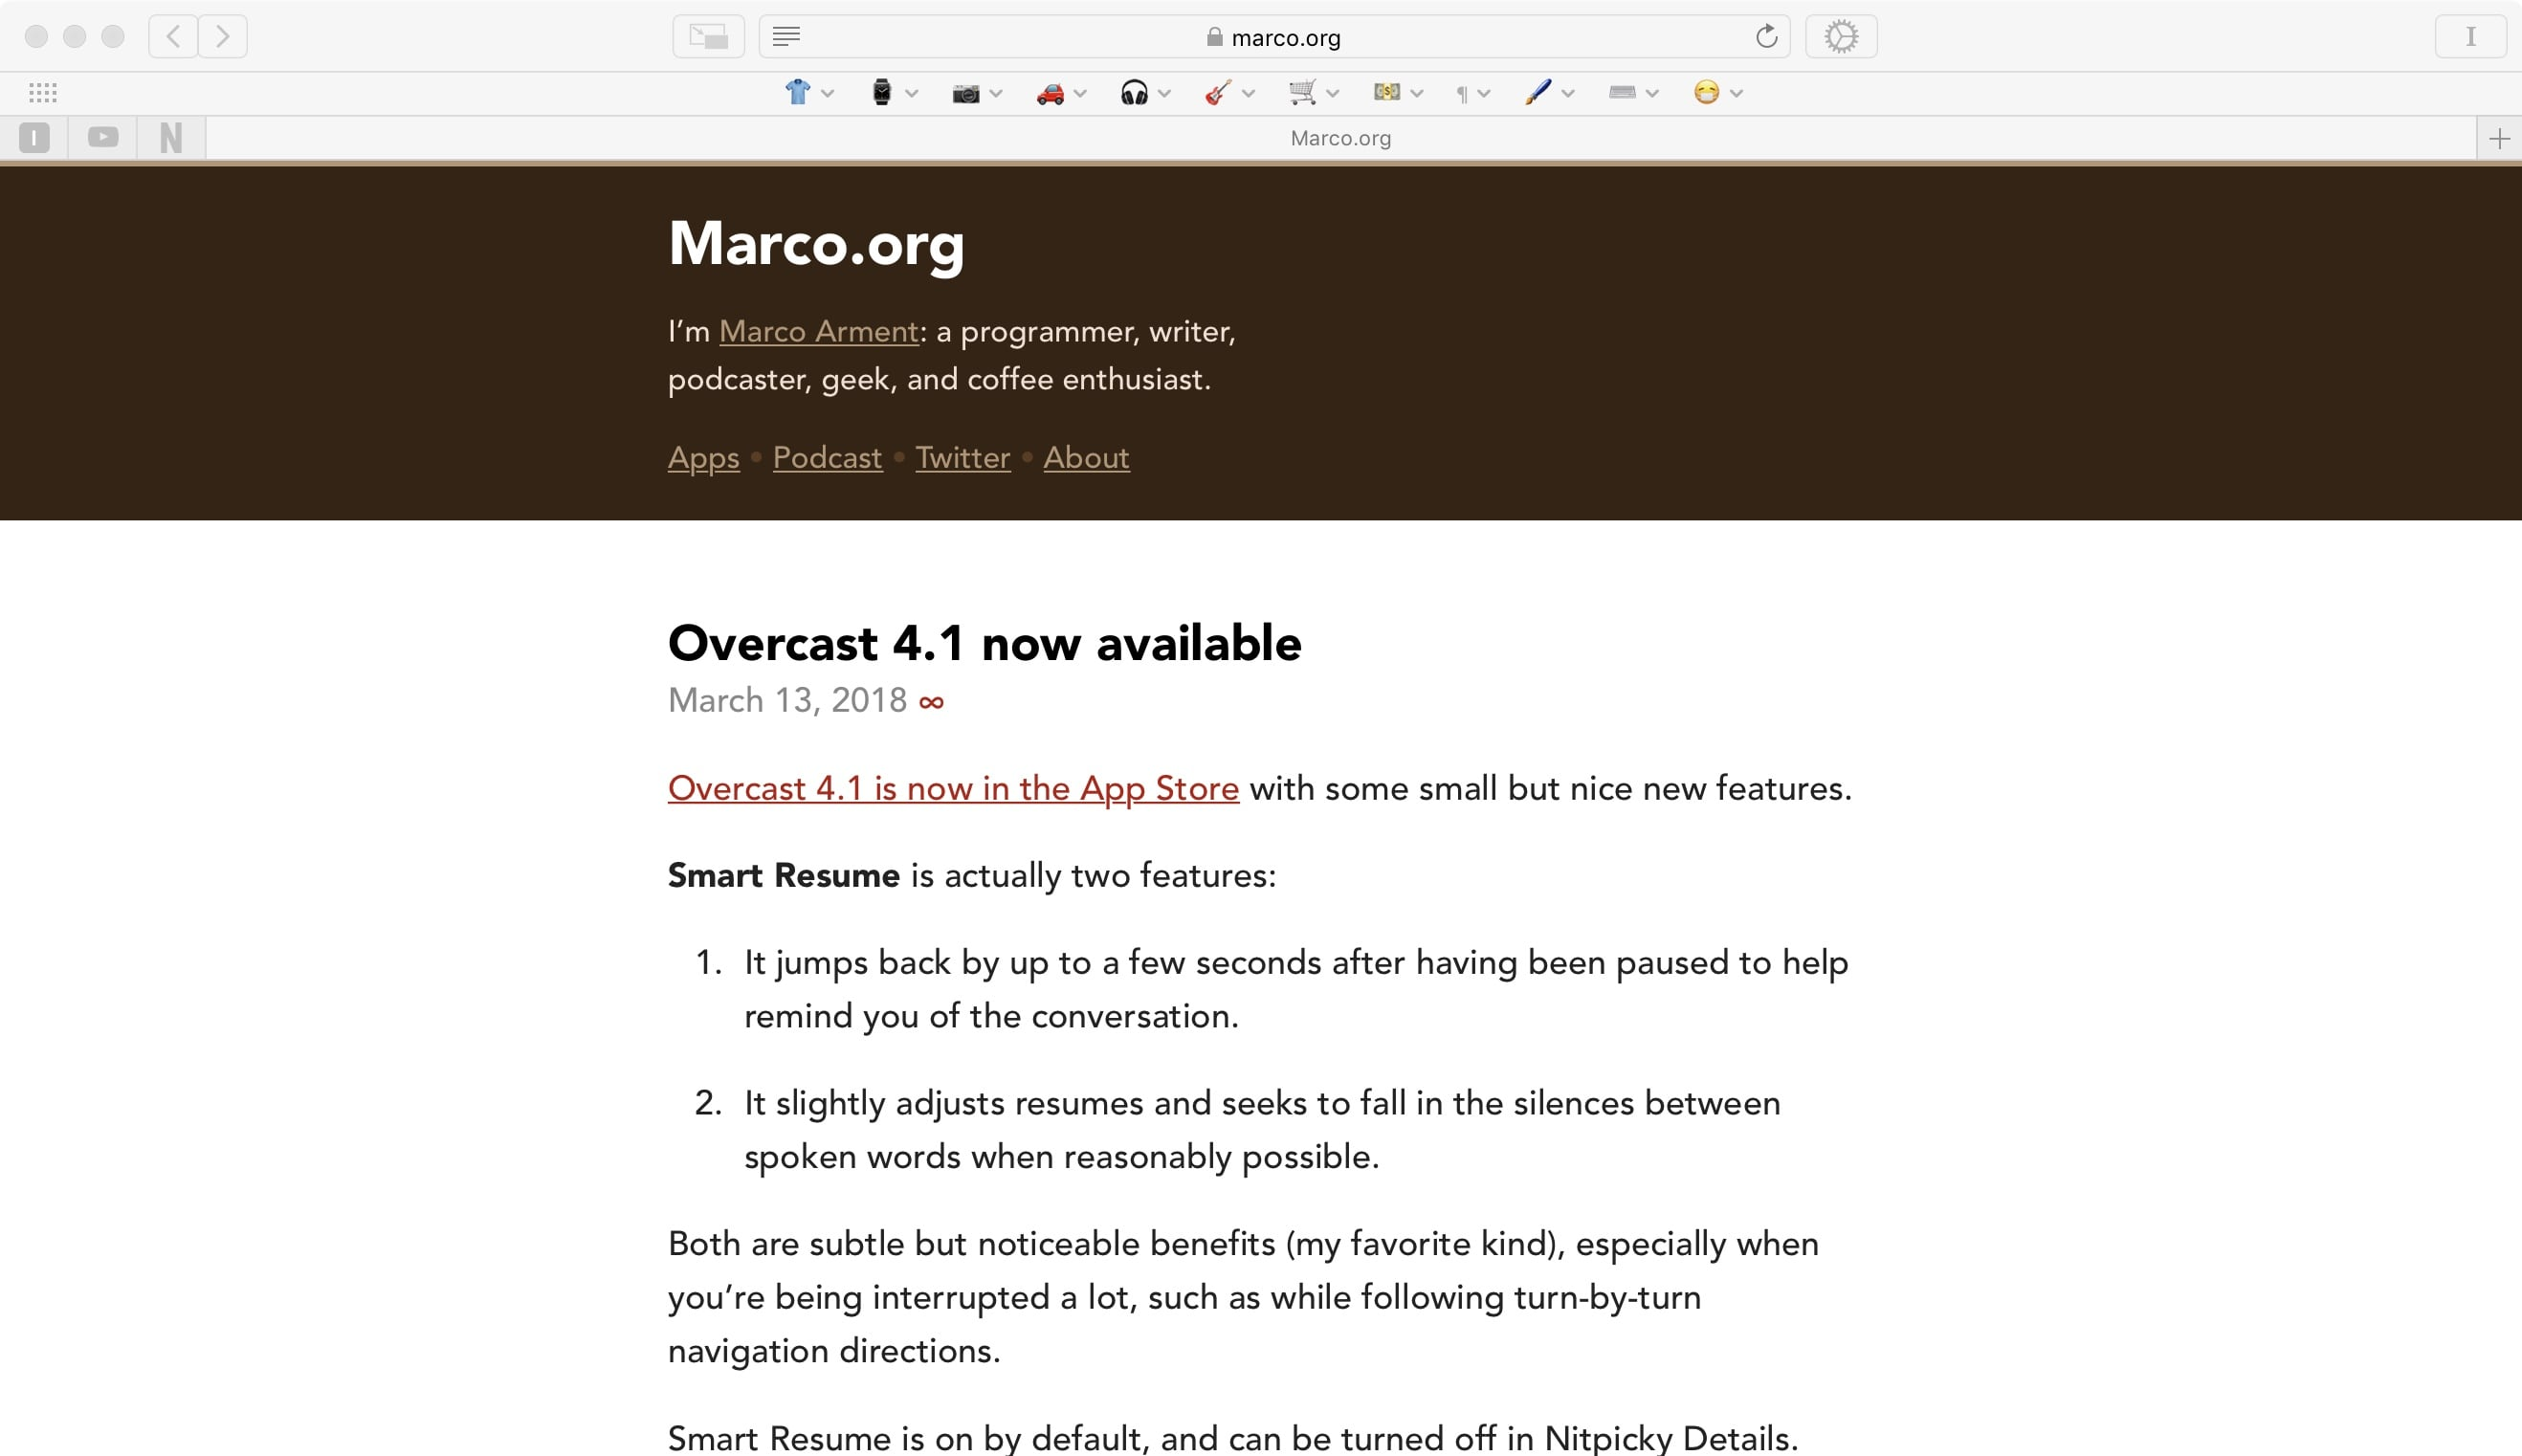 With specific Marco.org blacklisting. See how the title text is now vertically centered in the brown masthead? That's because I made the masthead 'taller.' (Probably would have been better if Marco used `display: flex;` in this situation, but what do I know?)